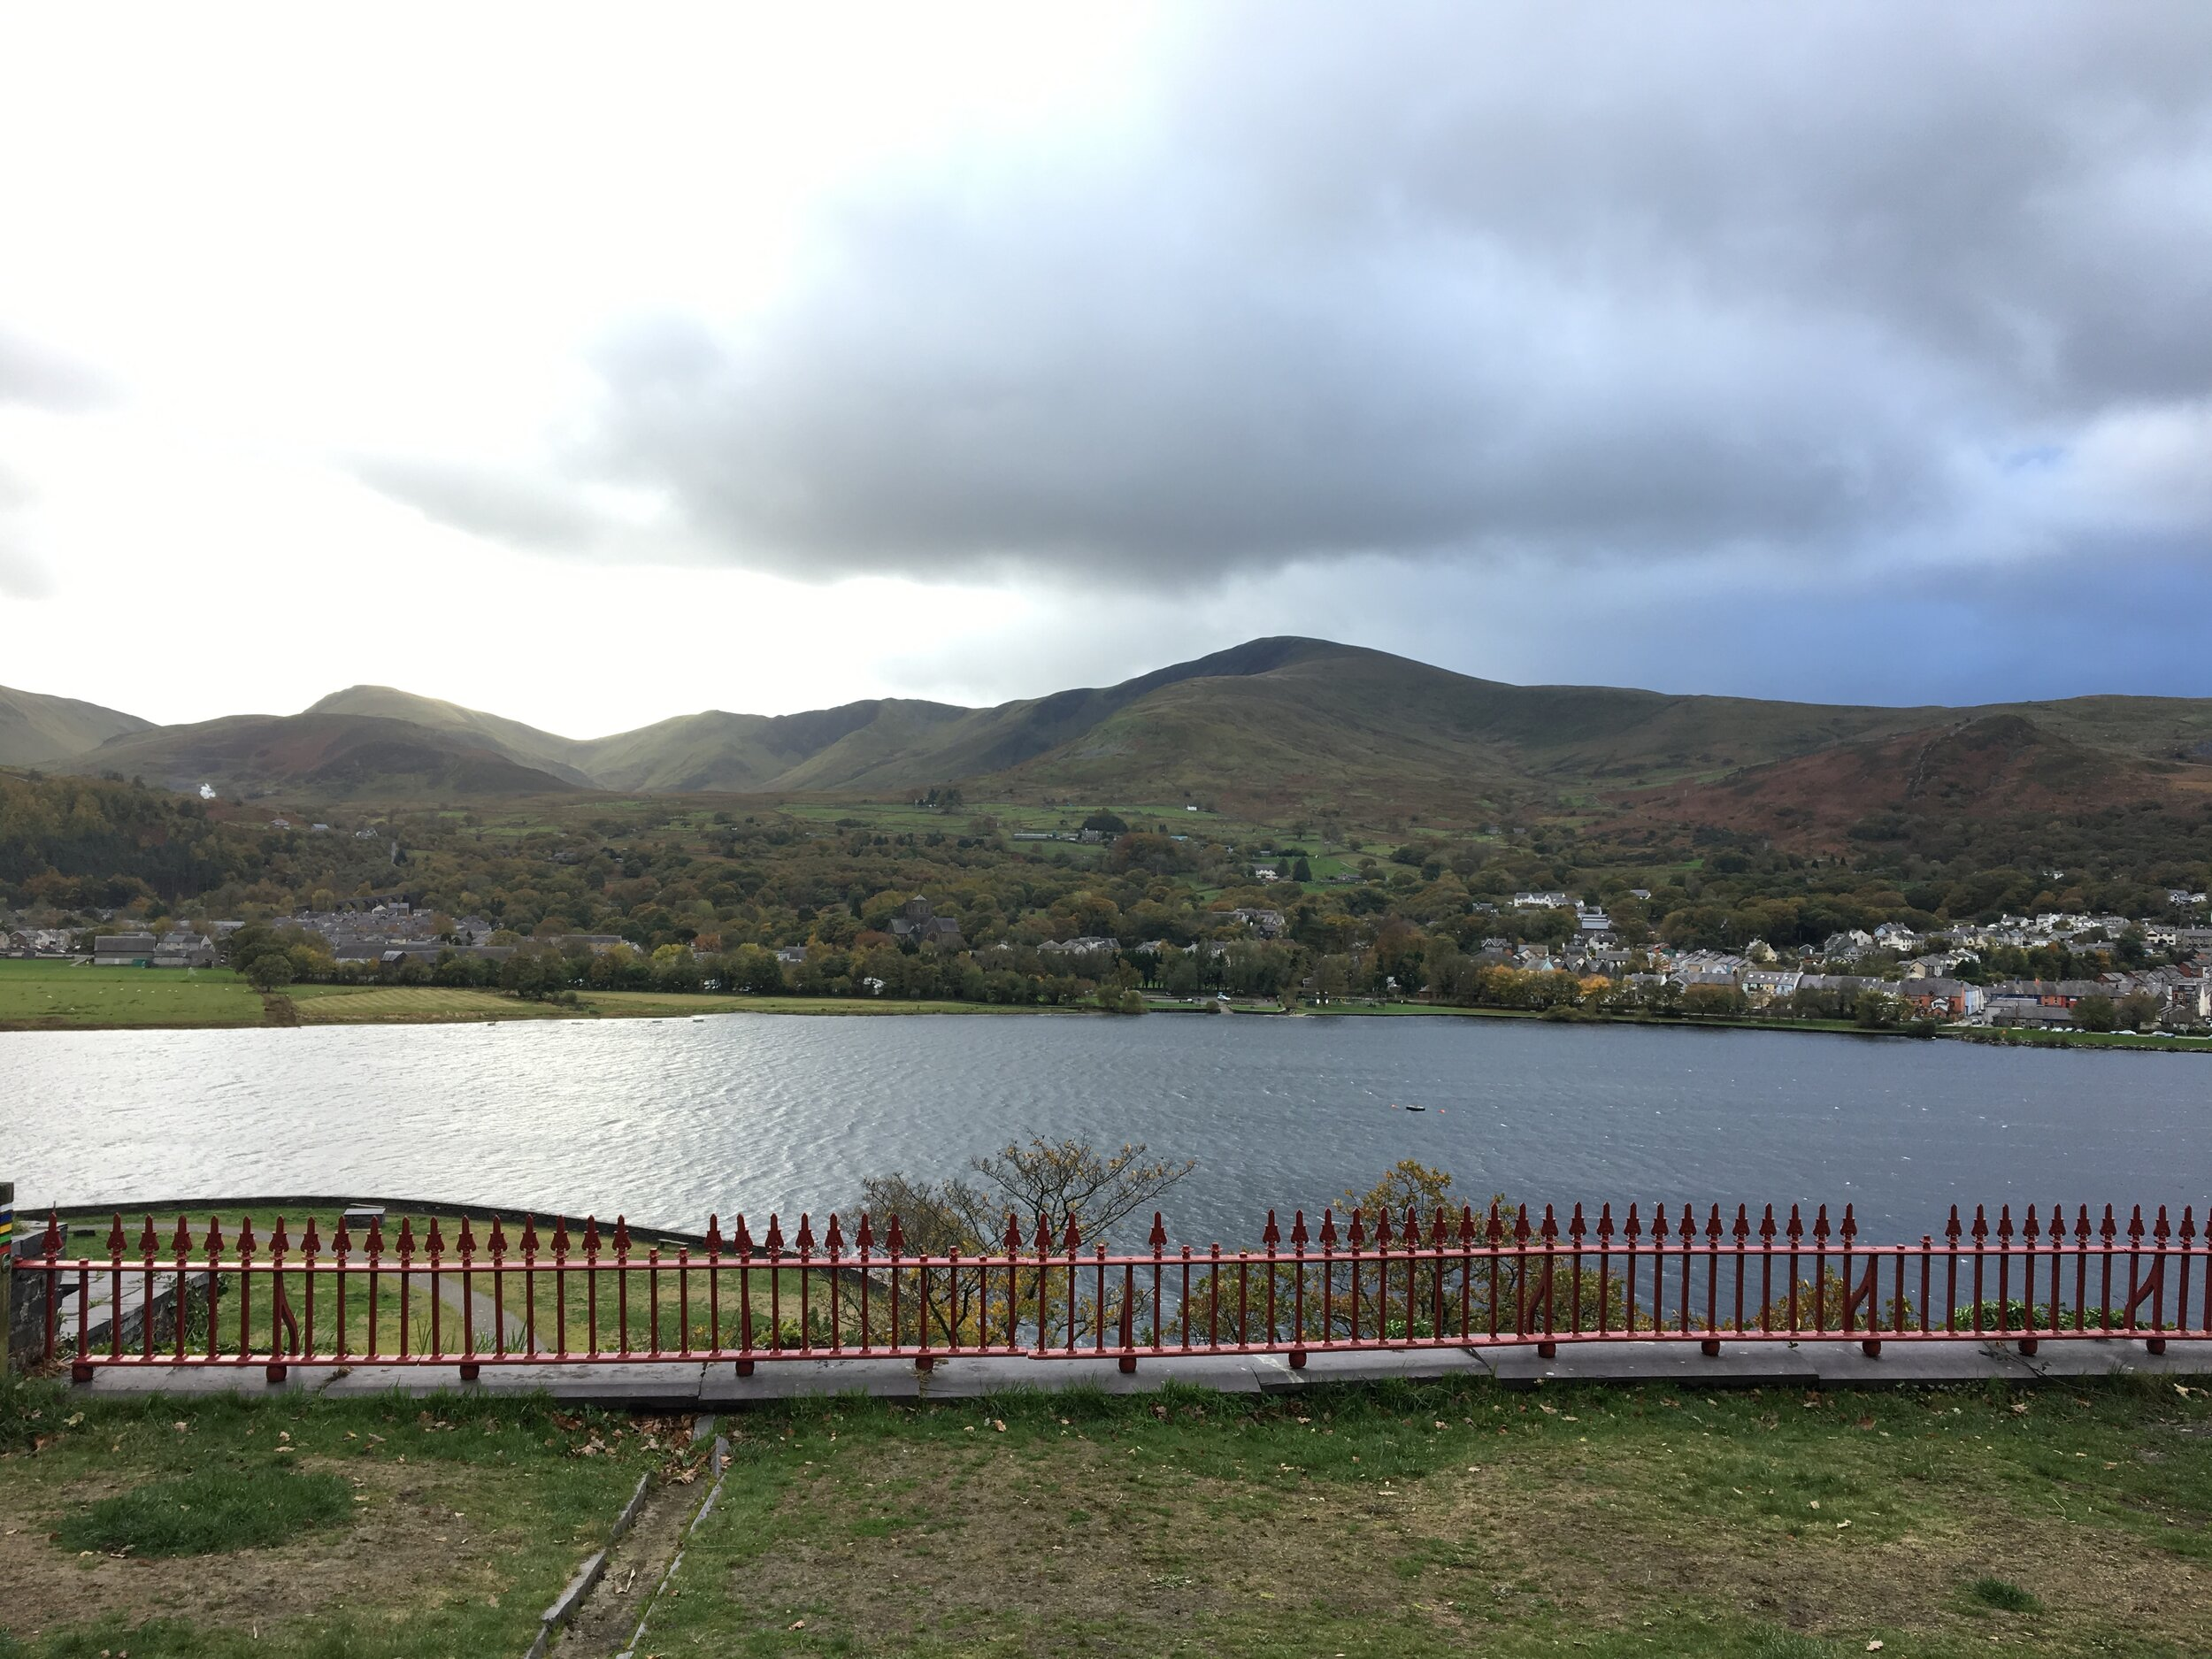 View from The Old Quarry Hospital towards Llanberis